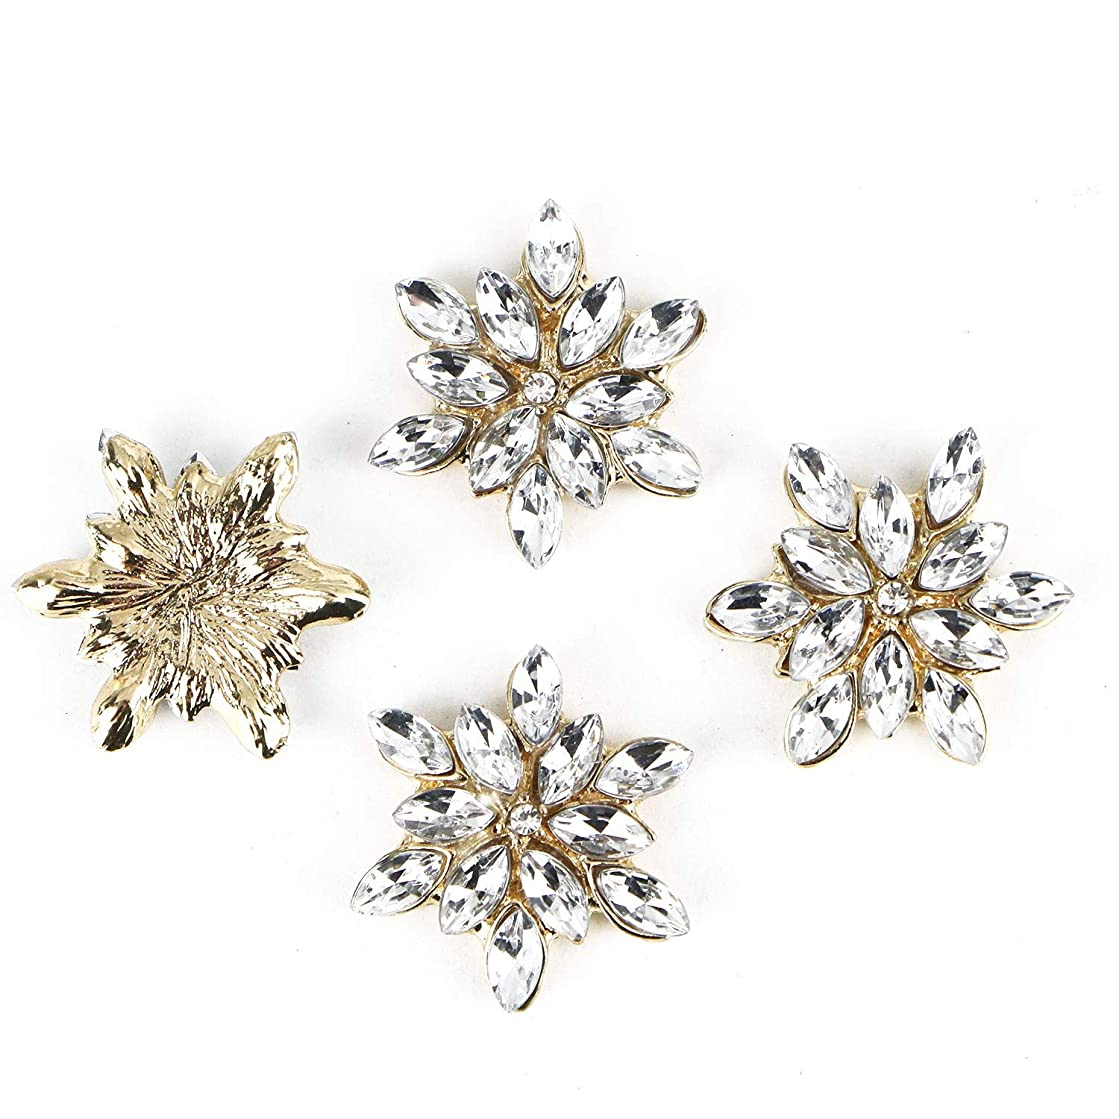 Monrocco 10 Pcs Crystal Rhinestone Flower Buttons Flatback Embellishments Charm for Crafts Jewelry Making